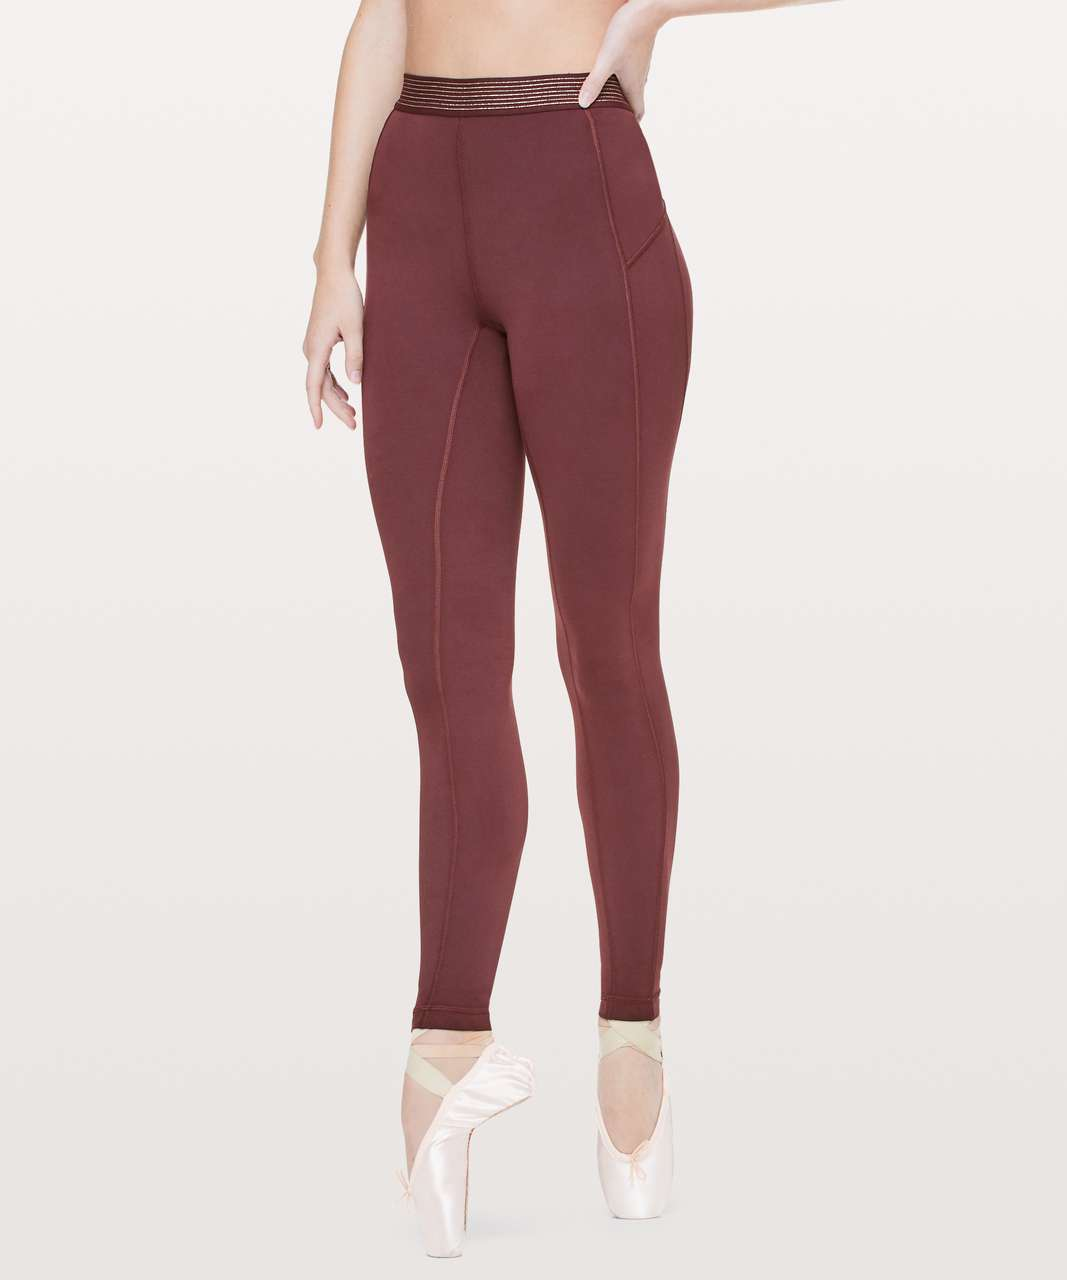 507f46a4b Lululemon Principal Dancer Golden Lining Tight  28